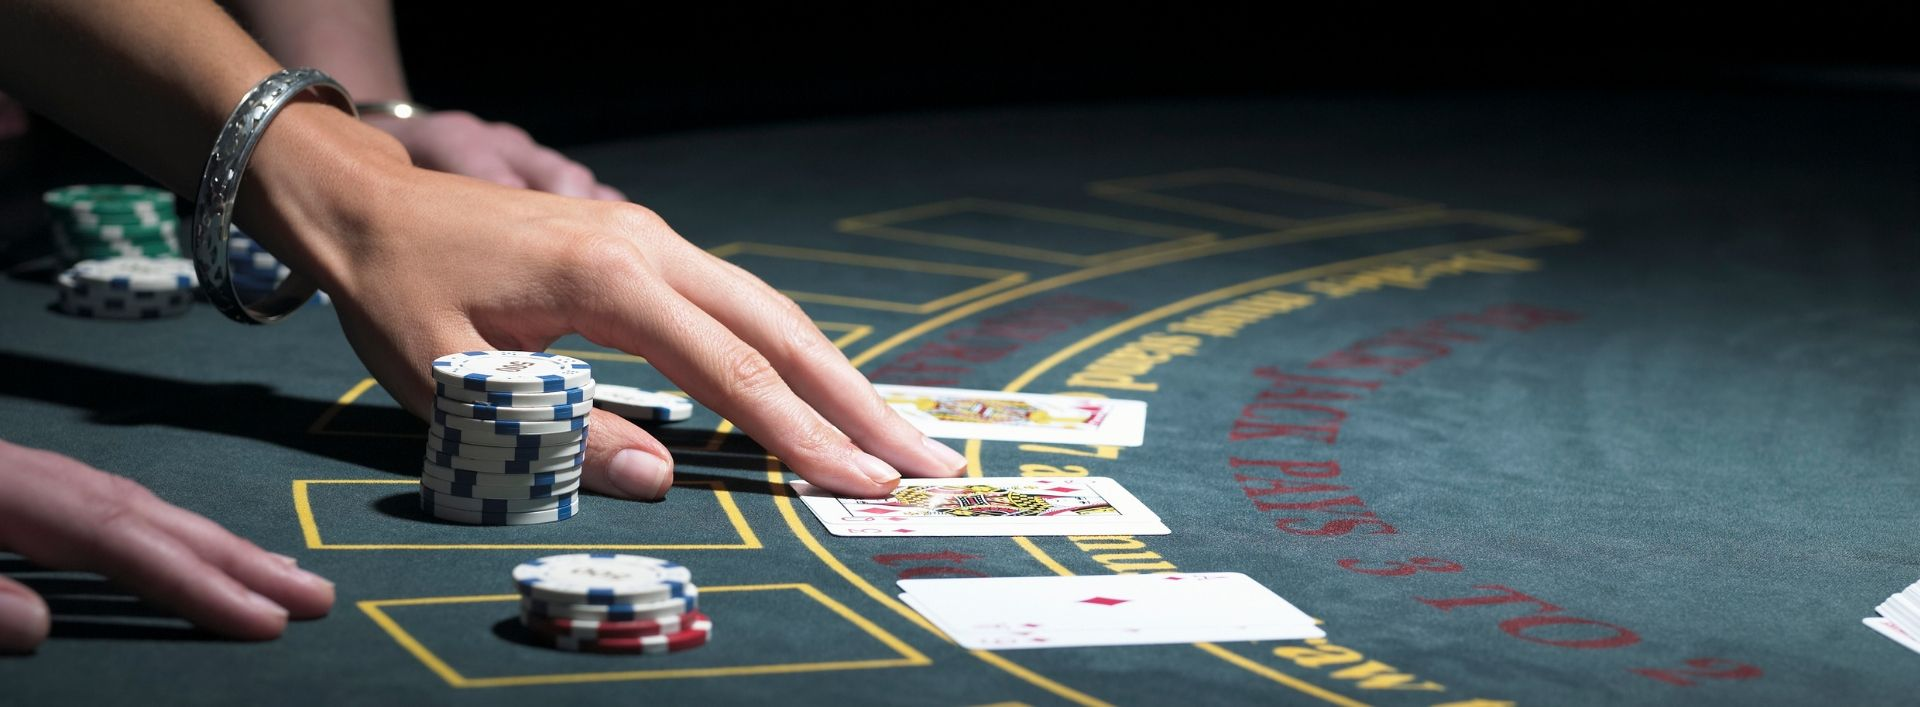 Play Blackjack on a USA Casino